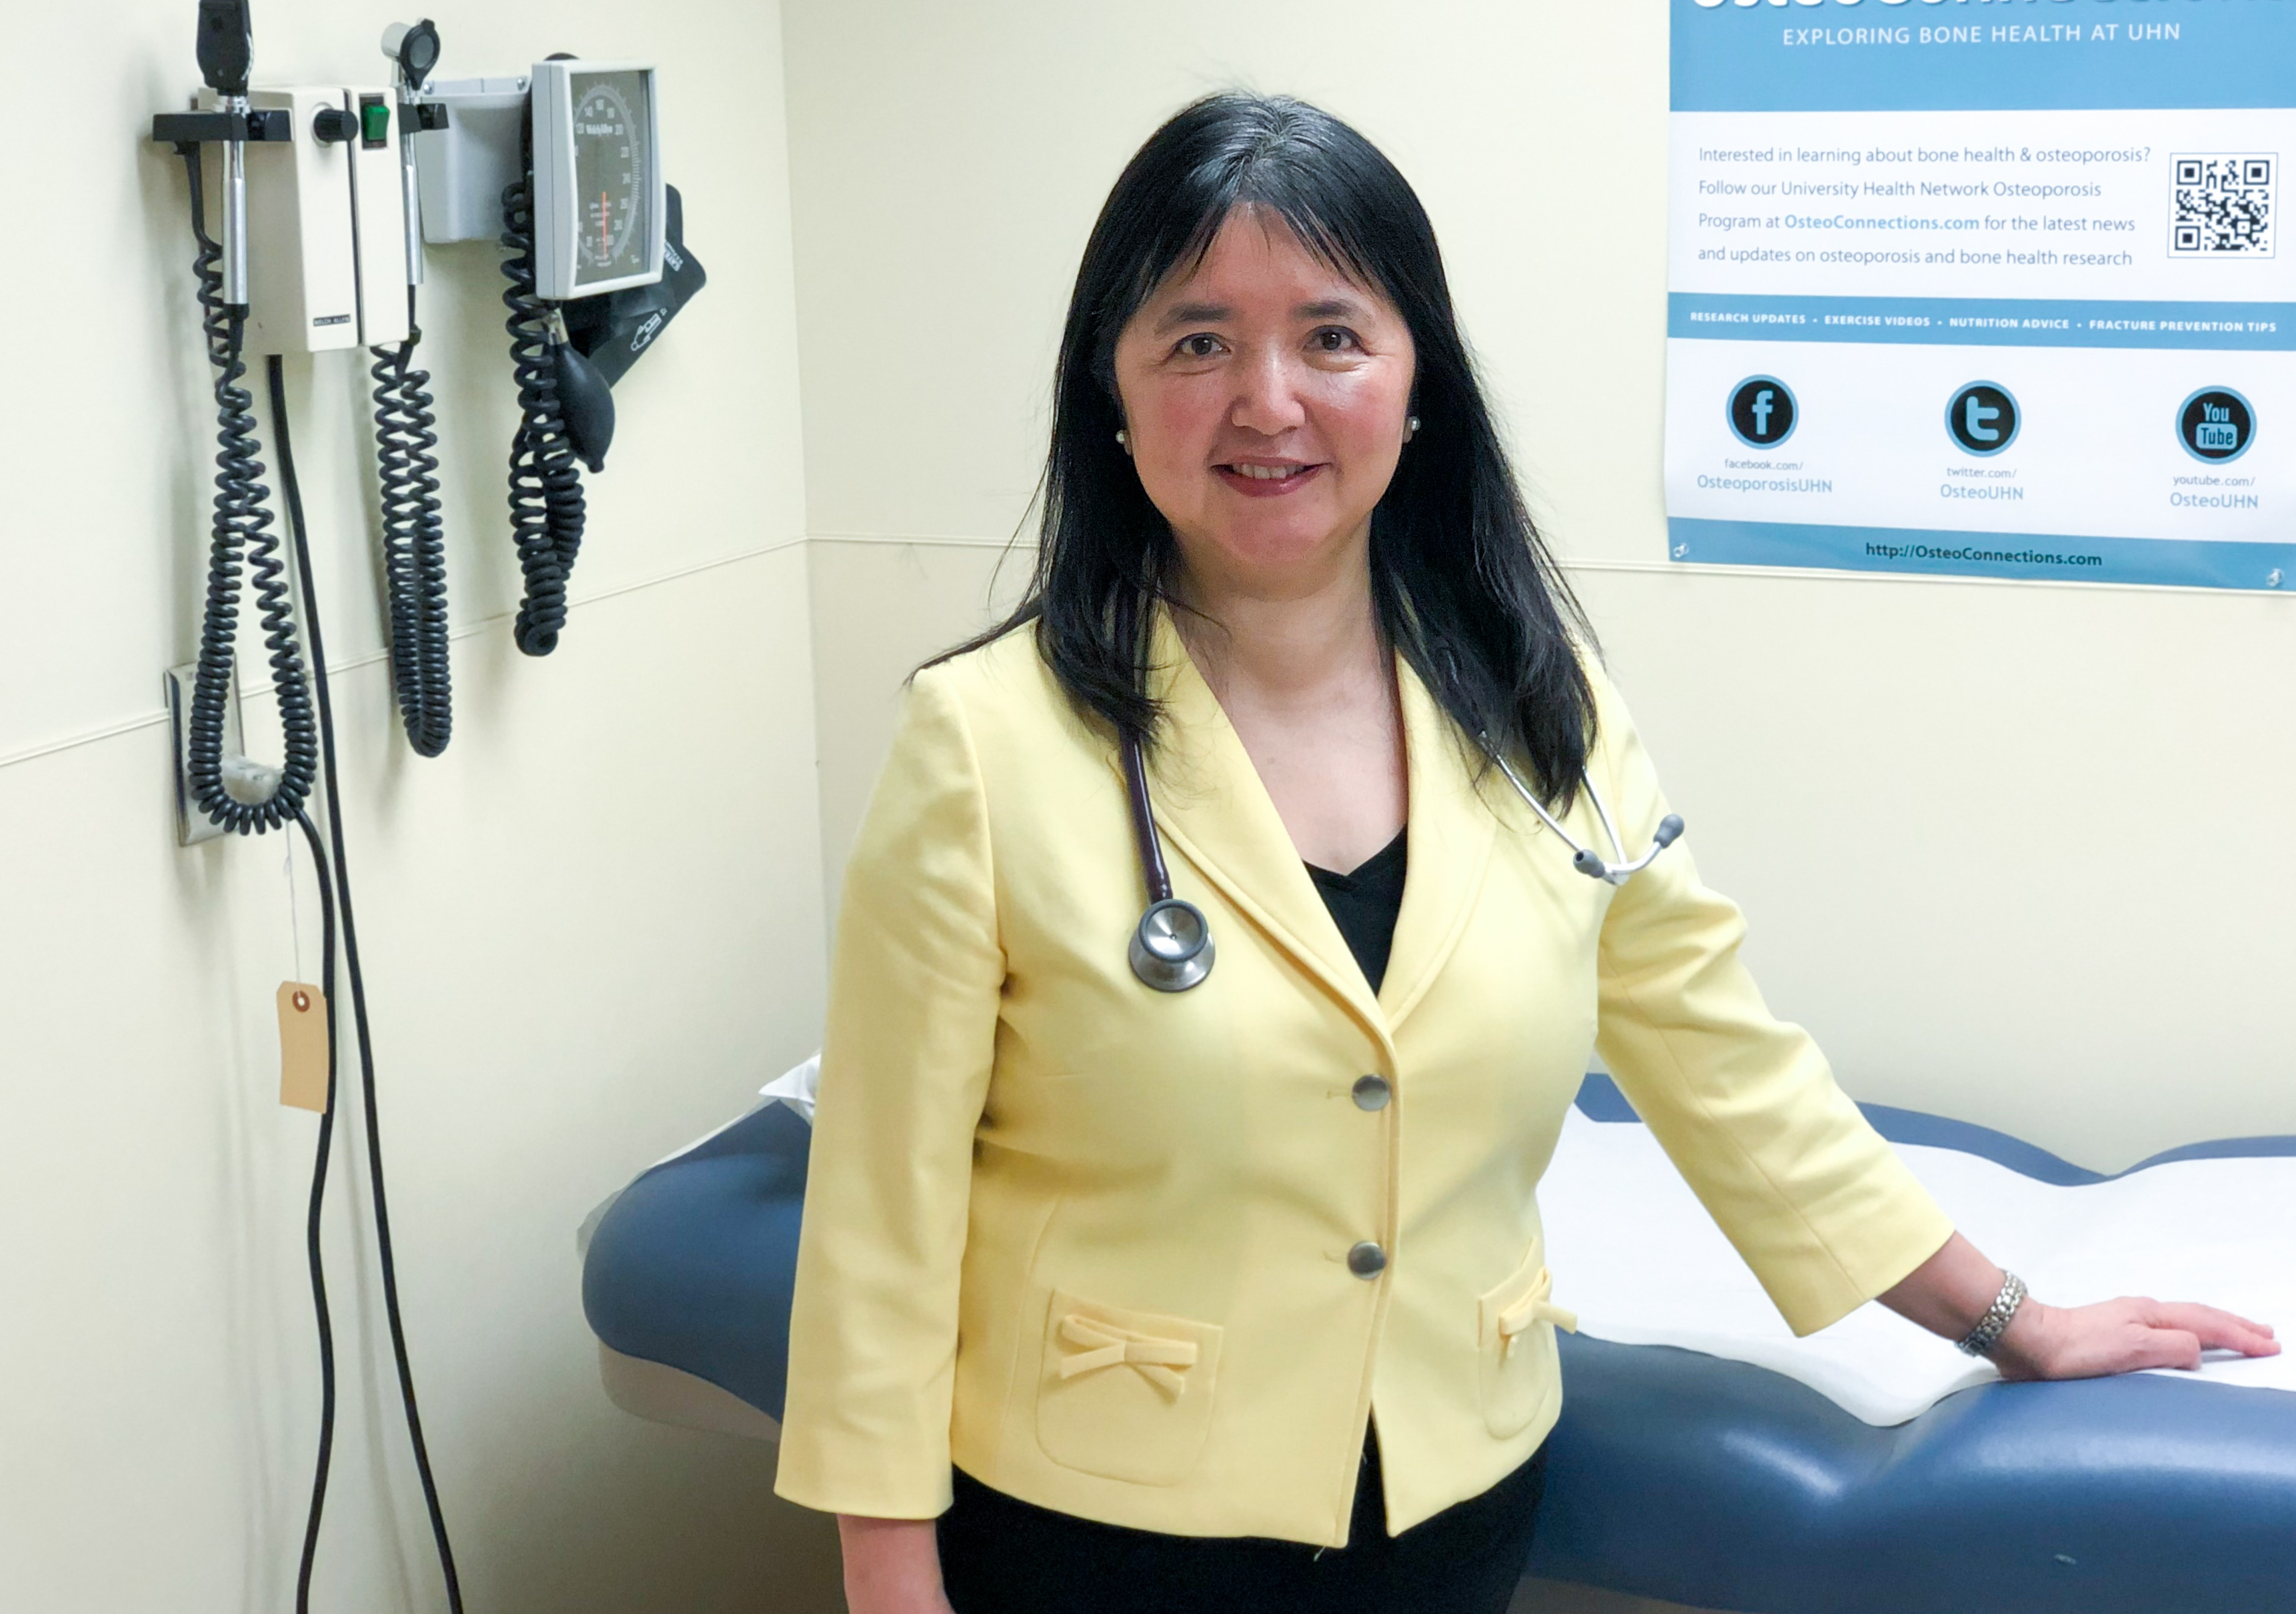 Dr. Angela Cheung, photo by Jessica Chang